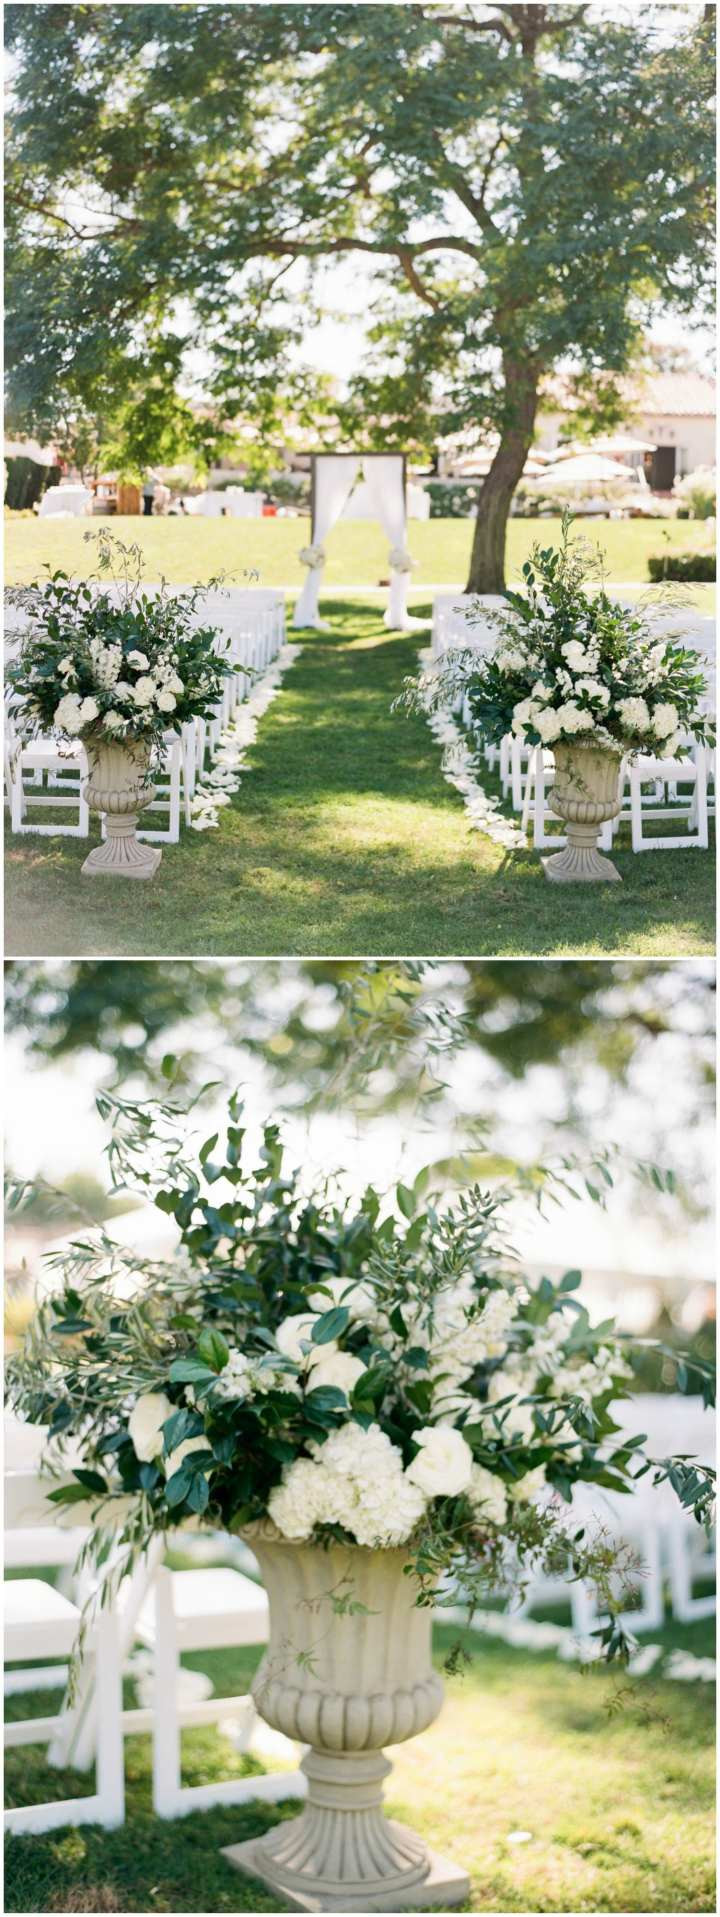 small flower vase ideas of outdoor wedding ceremony lovely vases disposable plastic single regarding outdoor wedding ceremony awesome the smarter way to wed wedding ceremony ideas pinterest of outdoor wedding